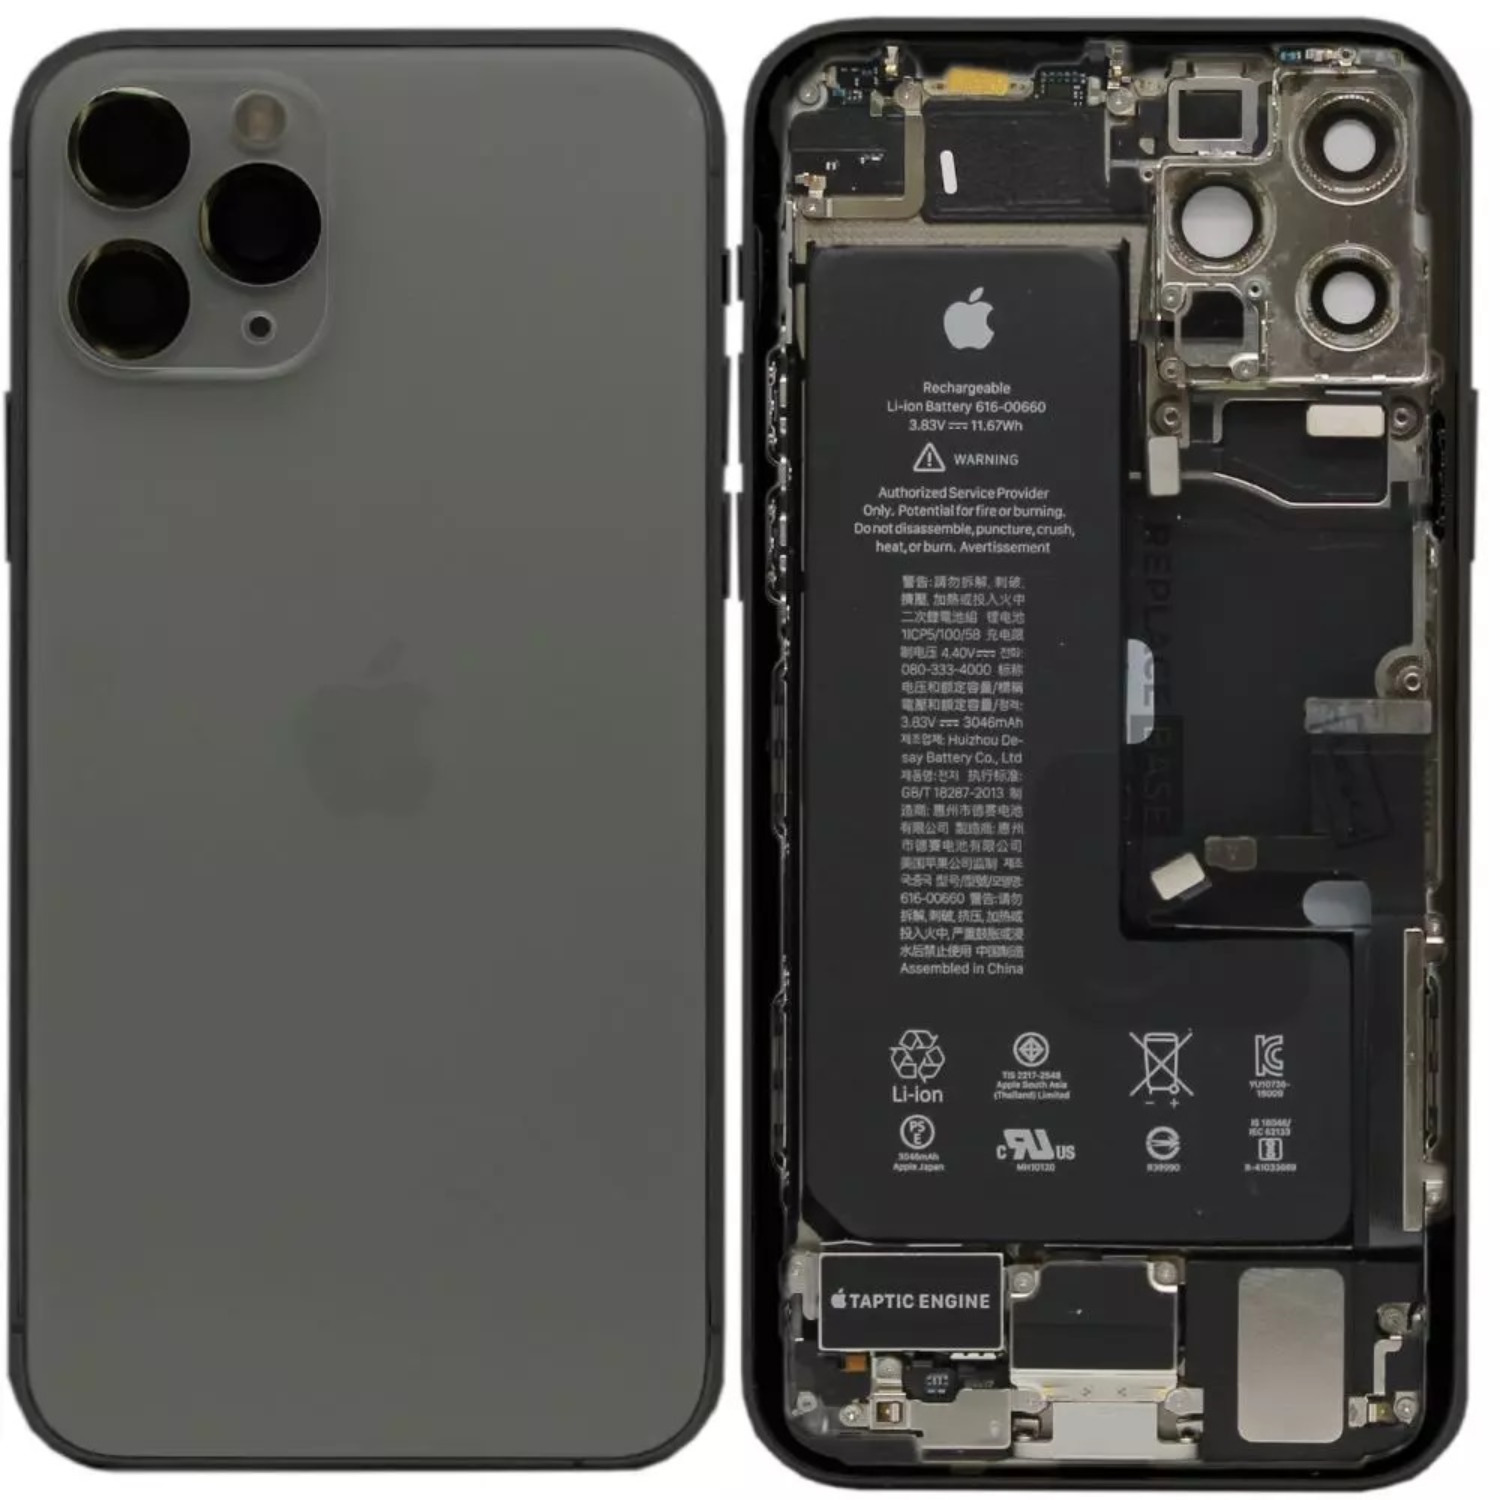 iPhone 11 Pro Replacement Genuine Rear / Back Housing Assembly With Battery | Original / Pull Black